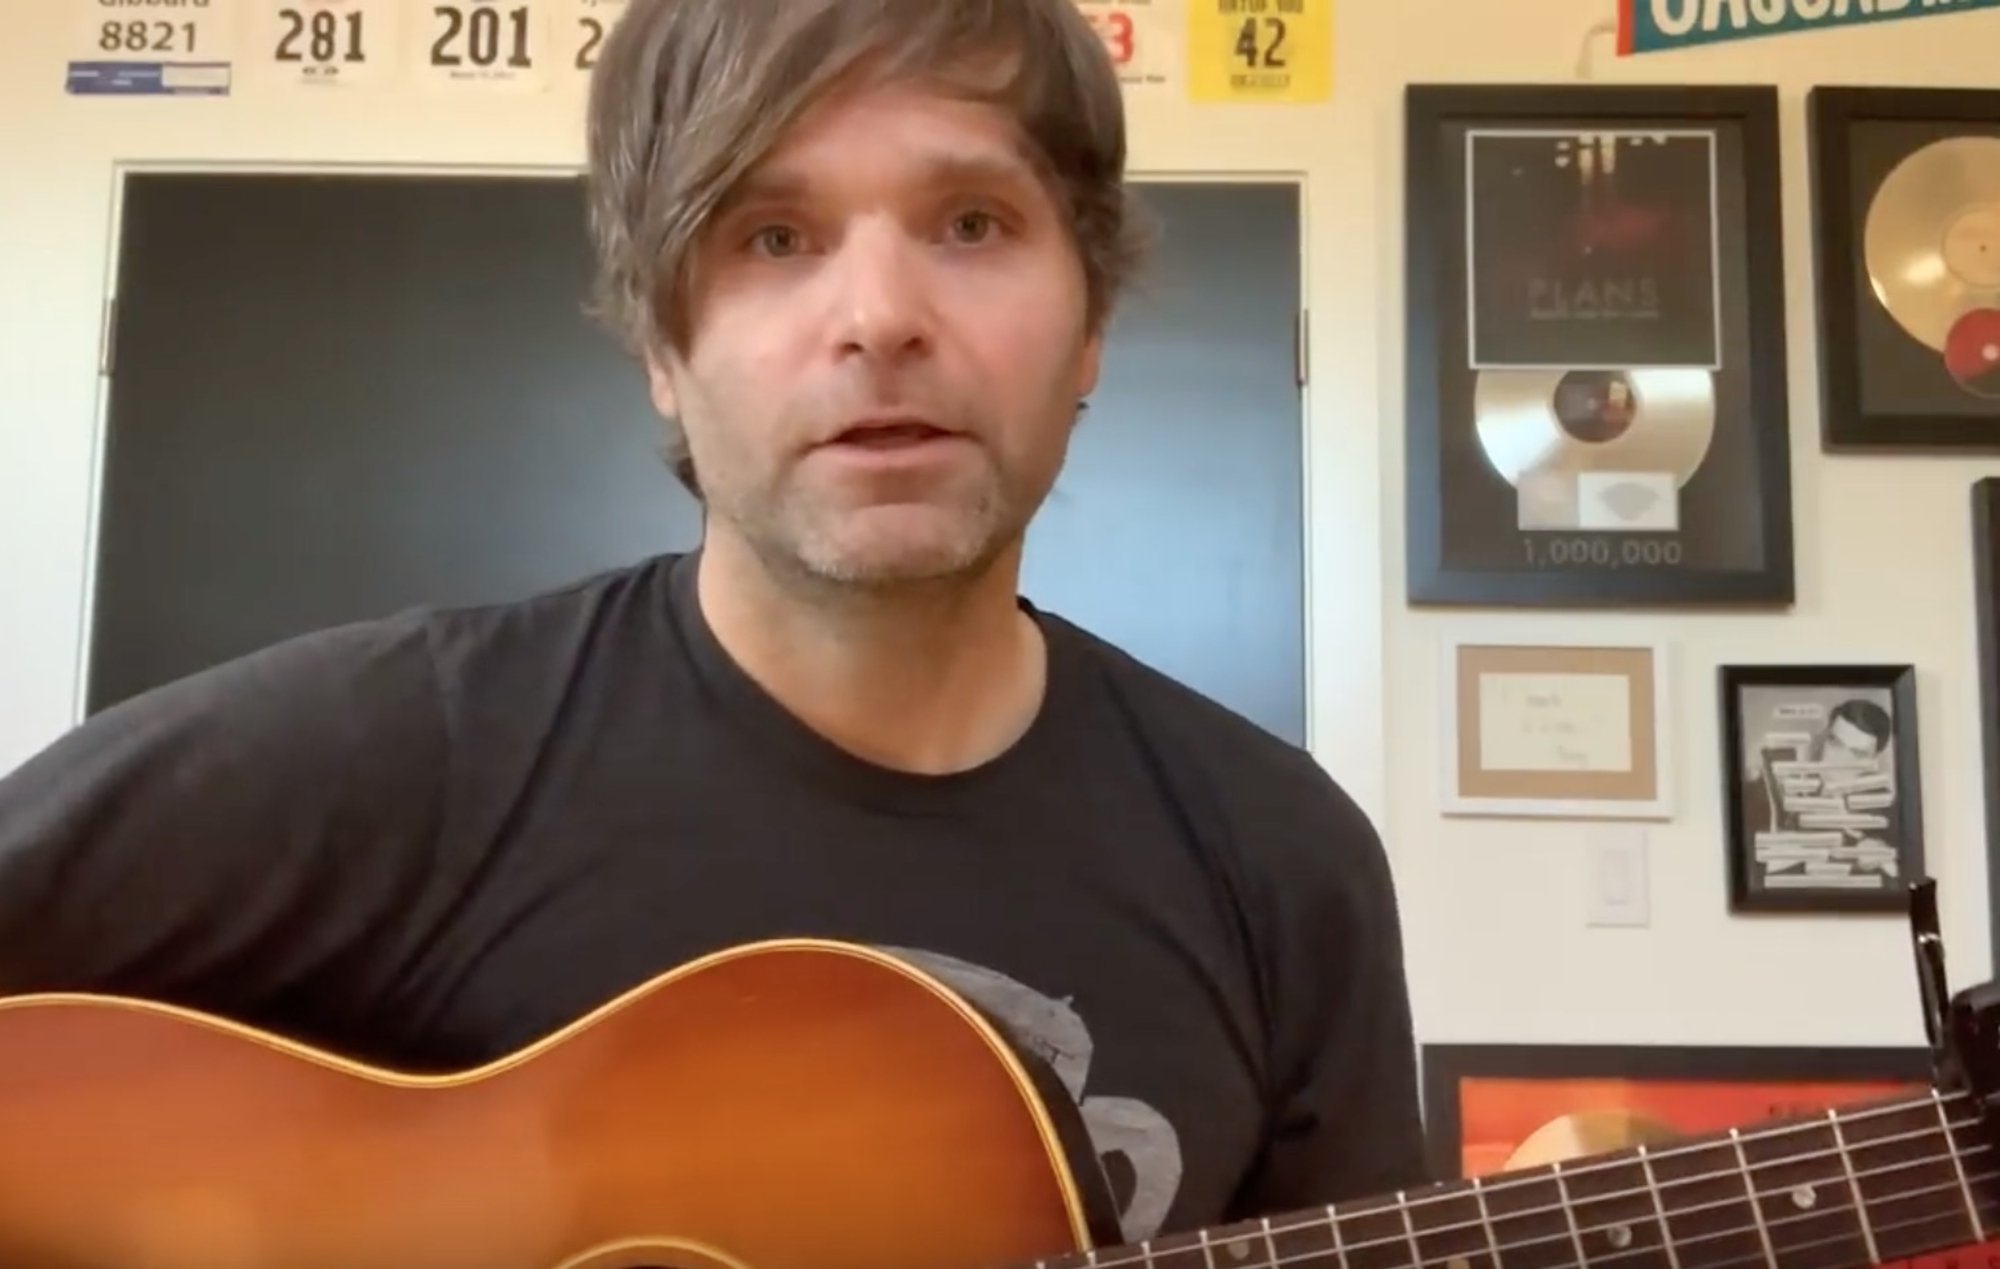 Watch Death Cab For Cutie's Ben Gibbard share new song 'Life in Quarantine' - EpicNews